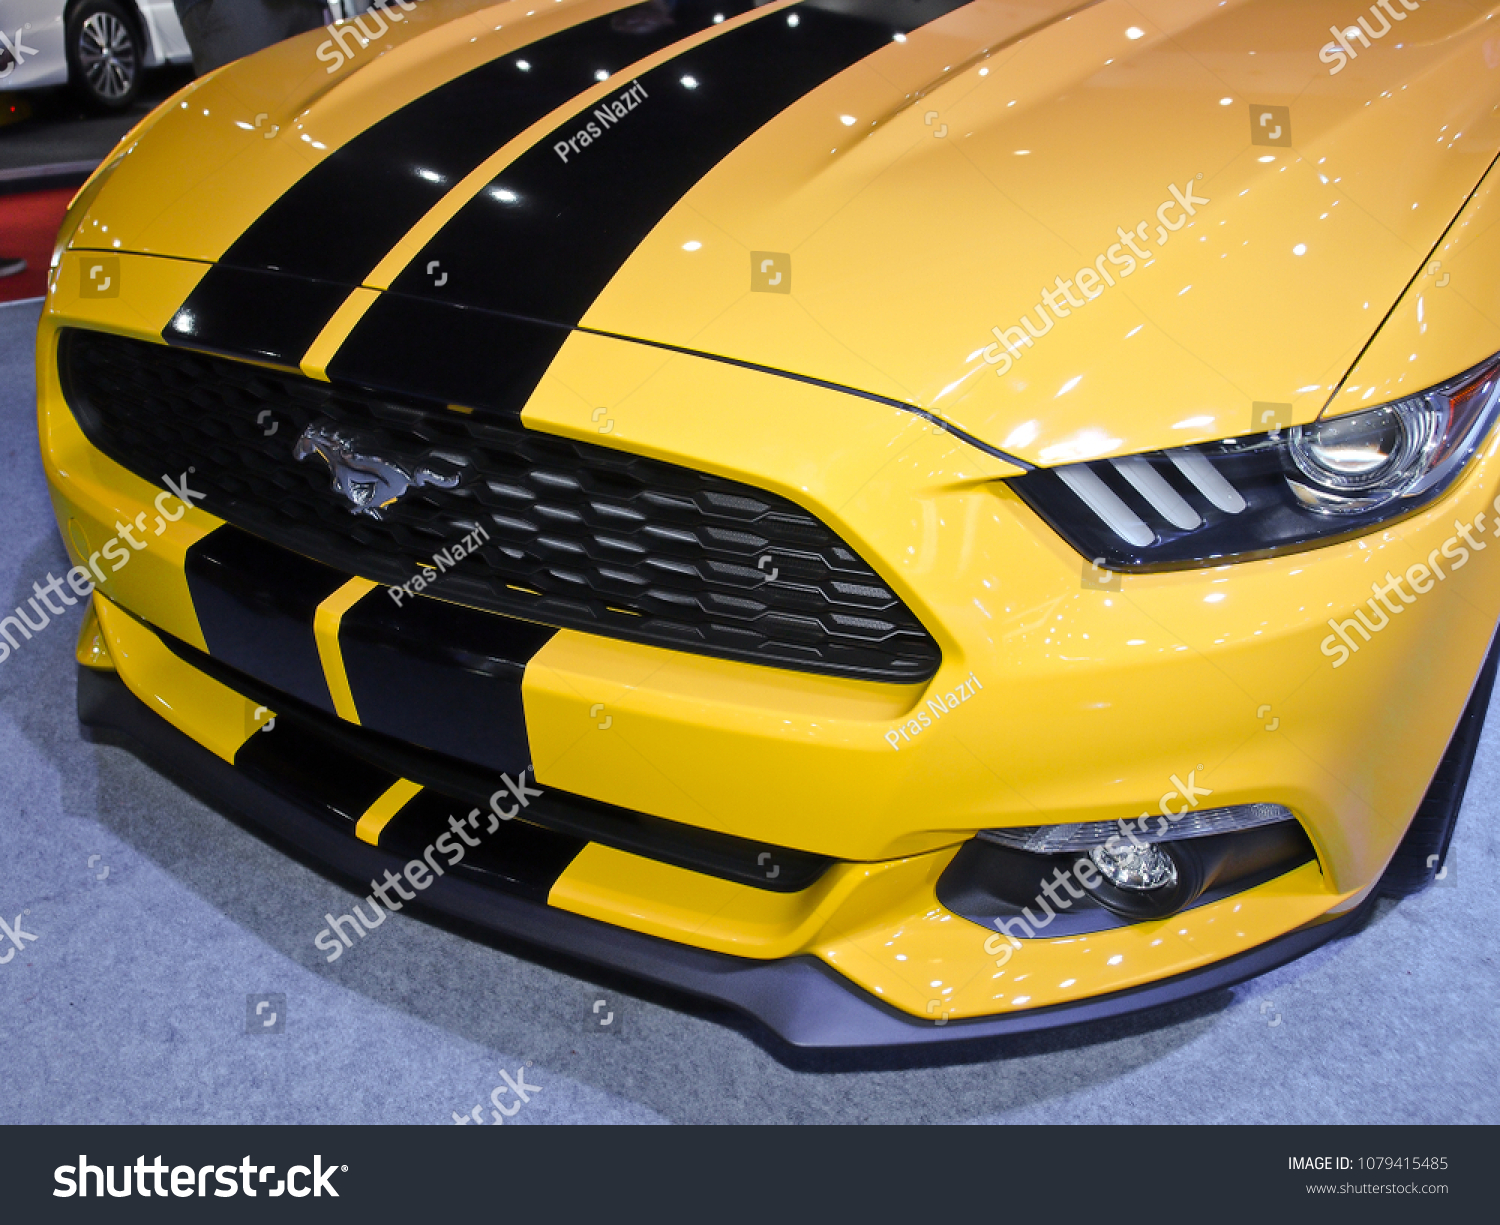 Jakarta april 24th 2018 a yellow ford mustang displayed at indonesia international motor